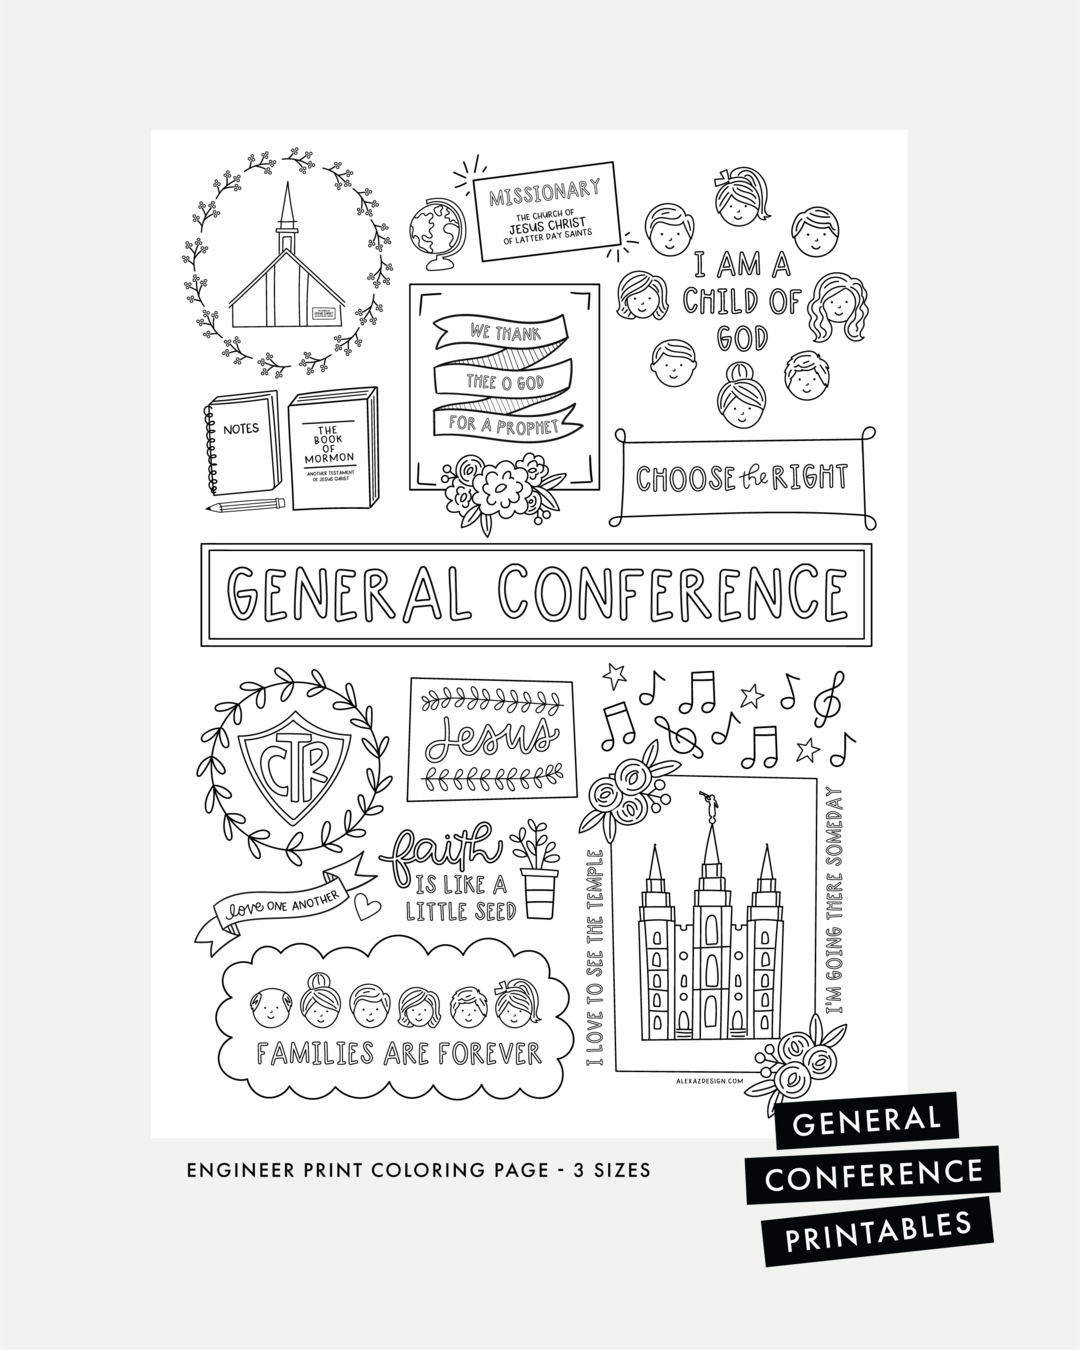 General Conference Coloring Page Printables General Conference General Conference Activities Printable Coloring Pages